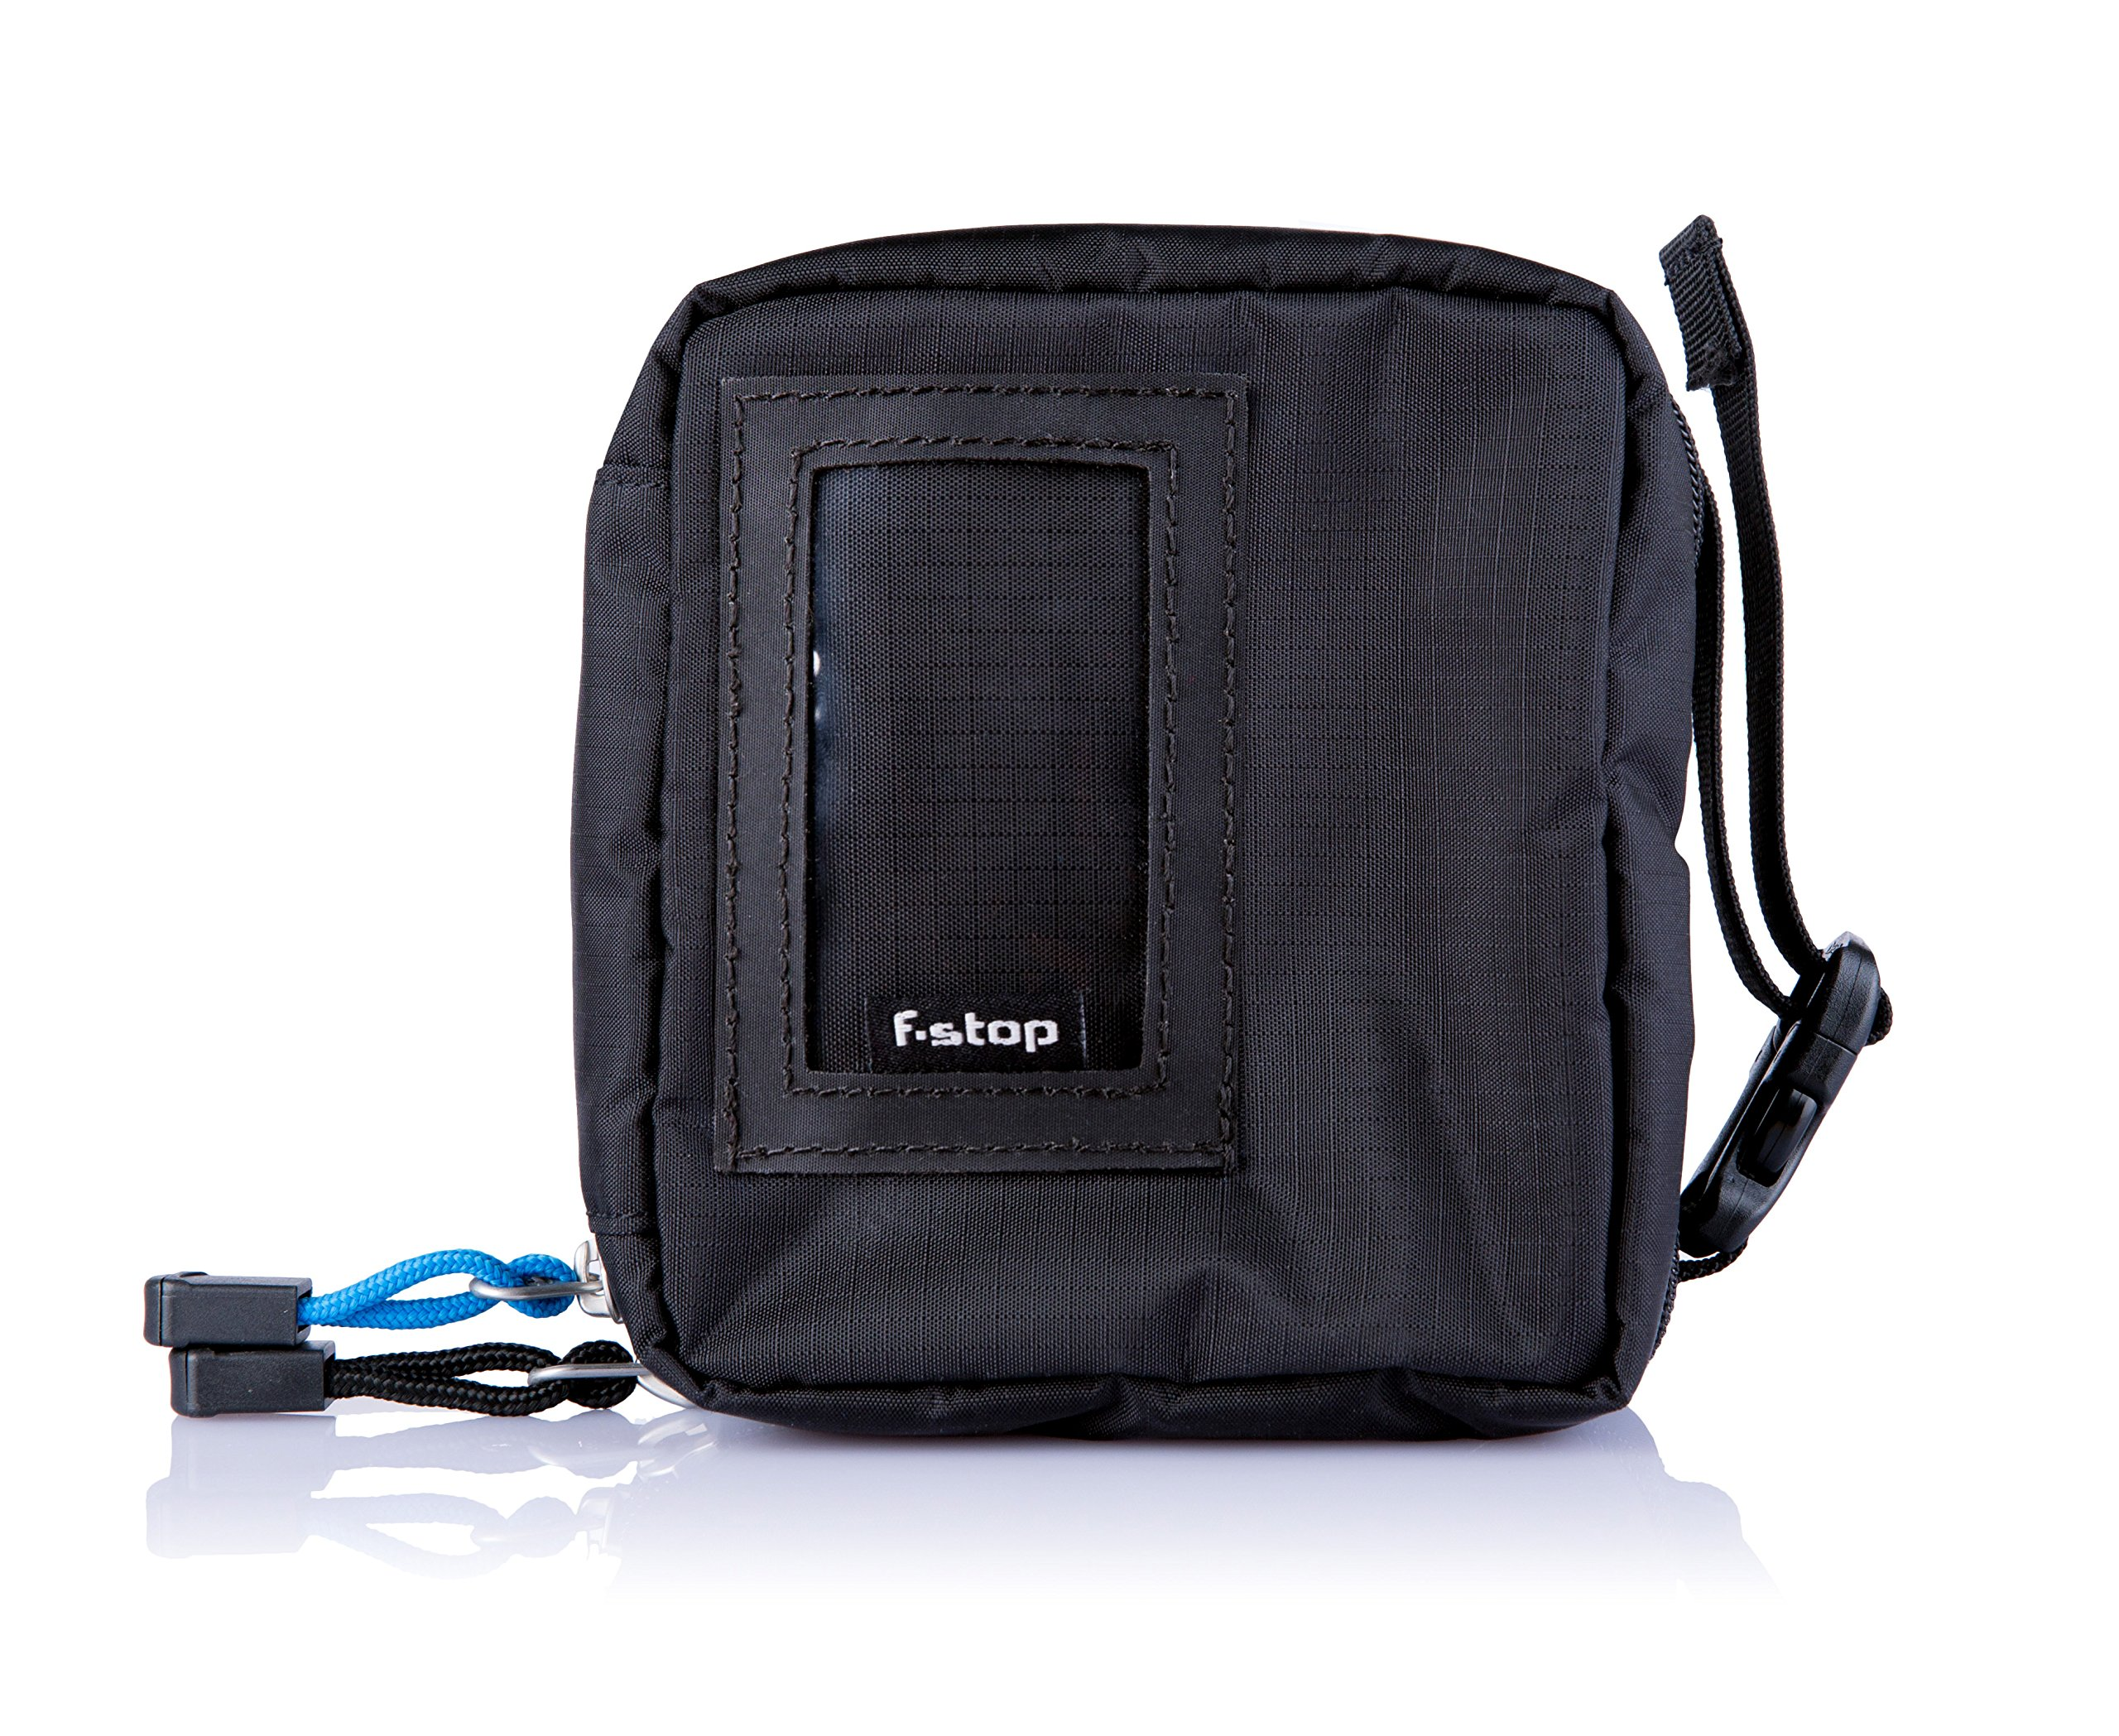 f-stop - Accessory Pouch Small